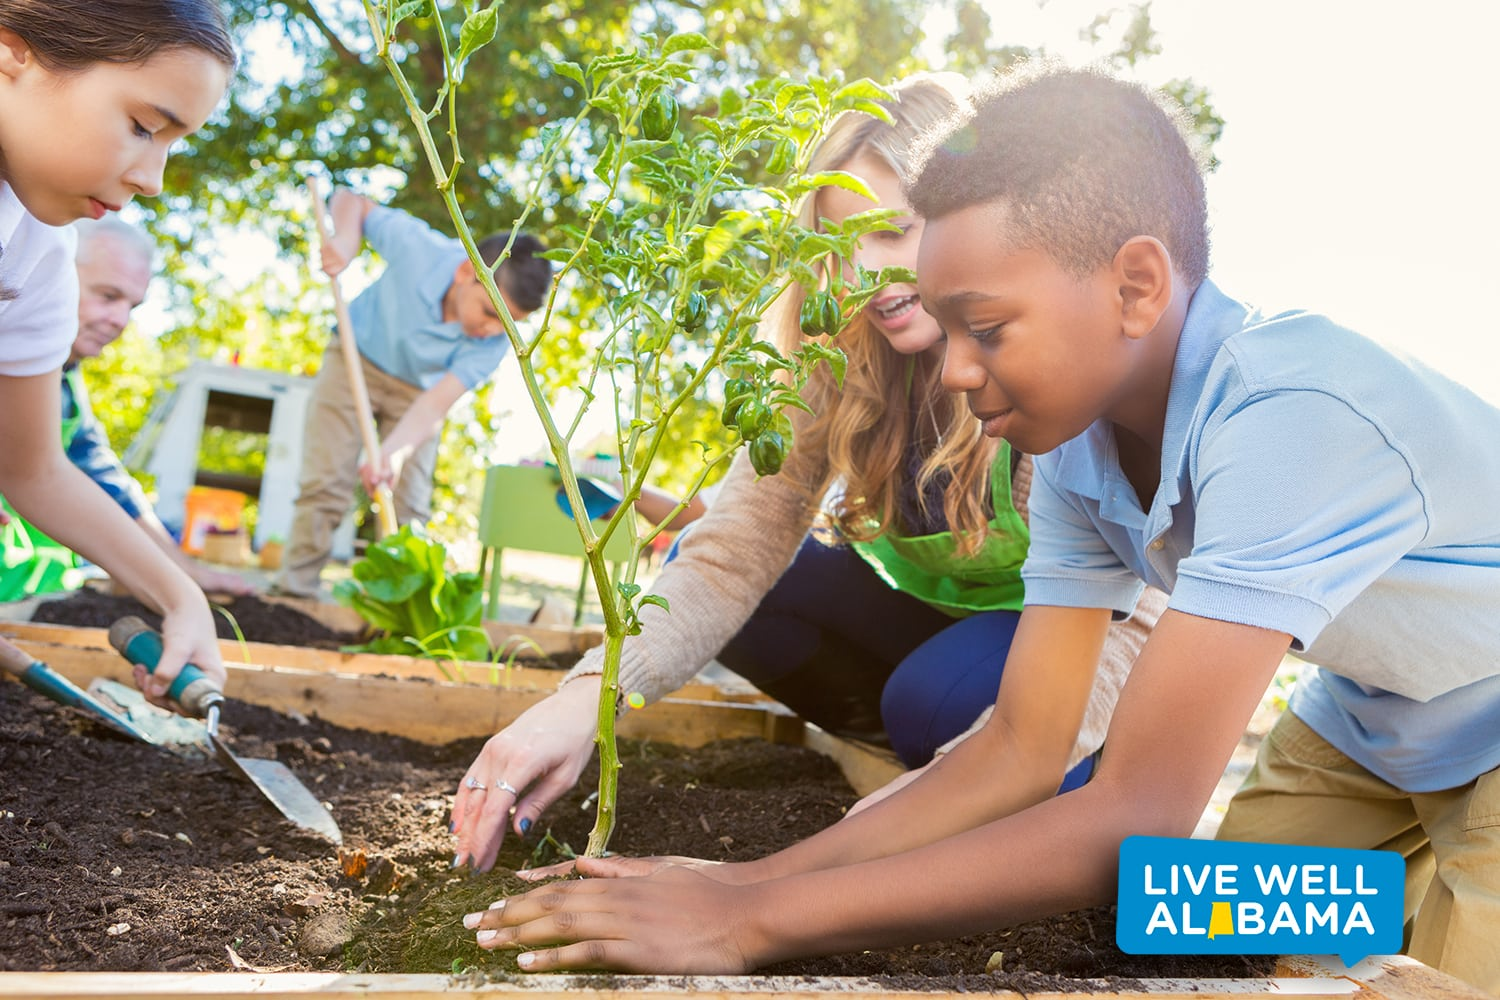 Elementary age students are working in school garden, and planting vegetables. Community gardens grow opportunities.